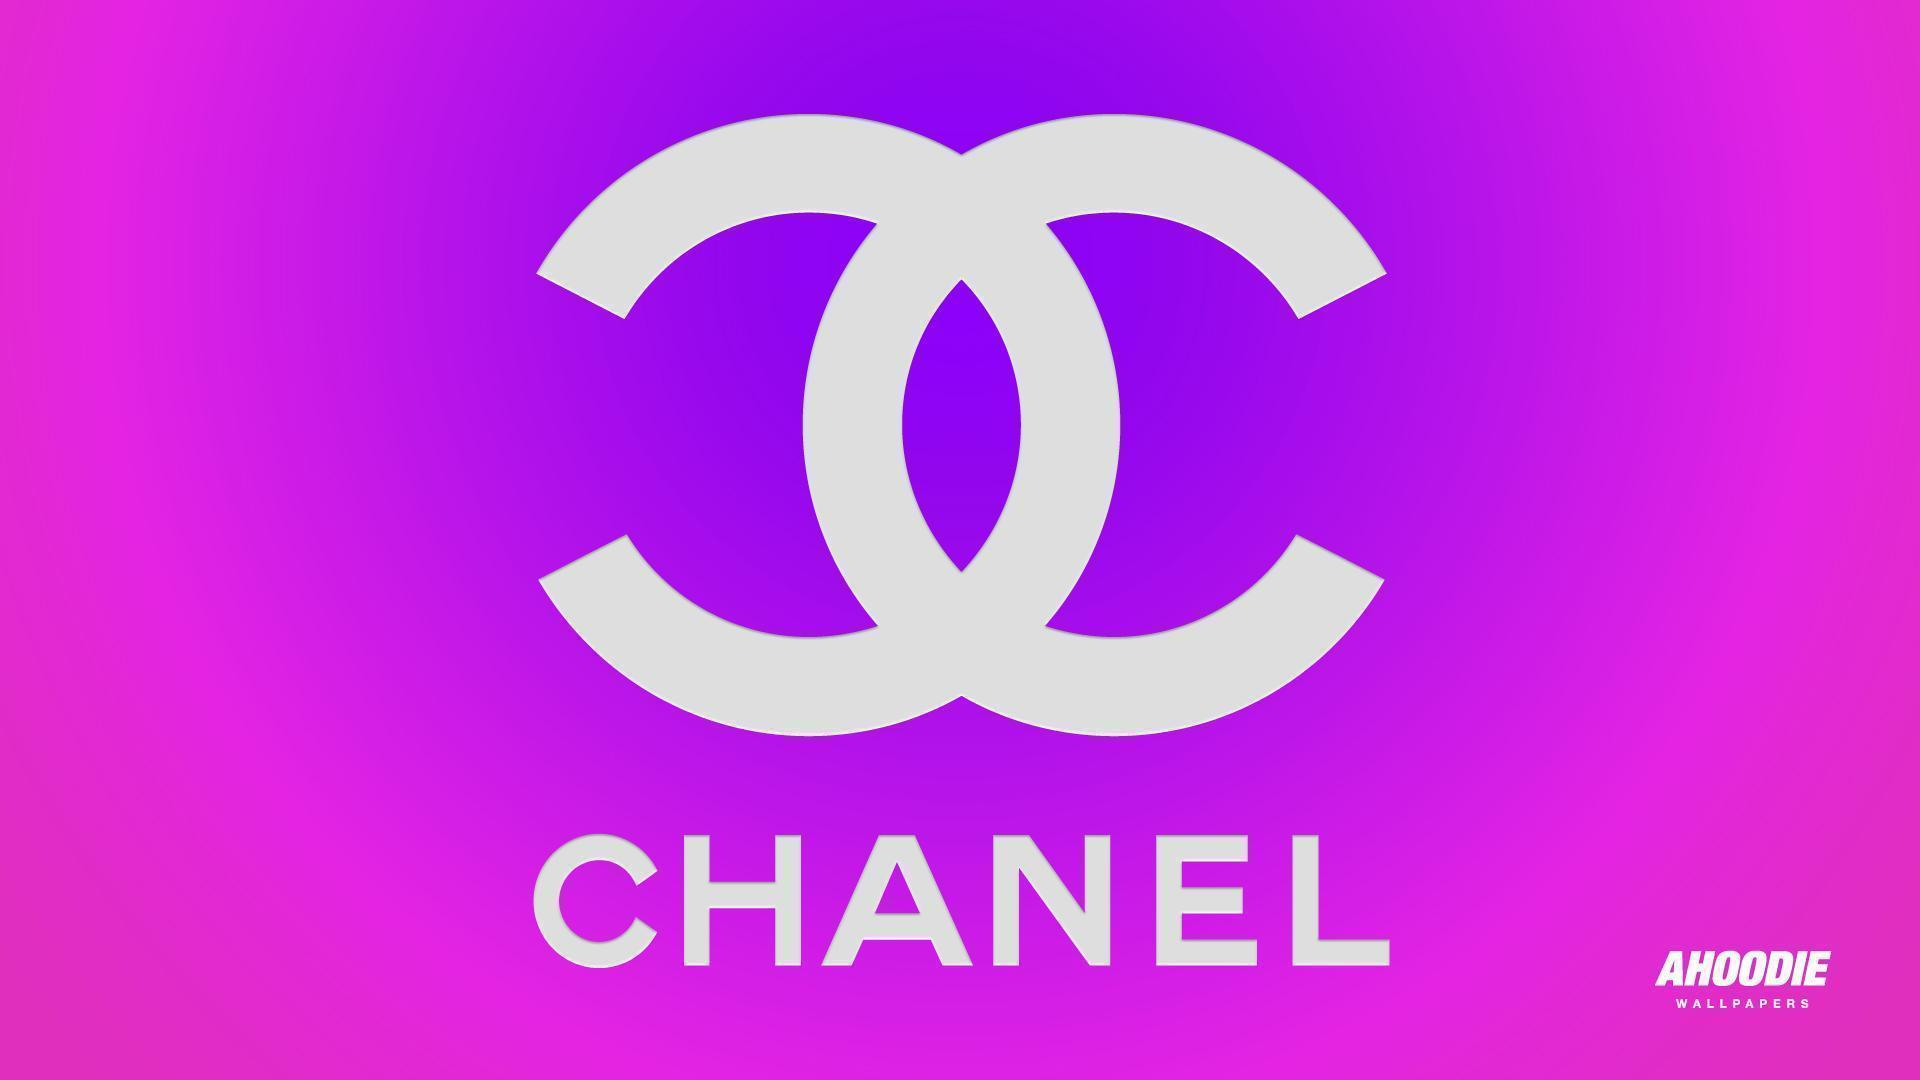 chanel | All the action from the casino floor: news, views and more